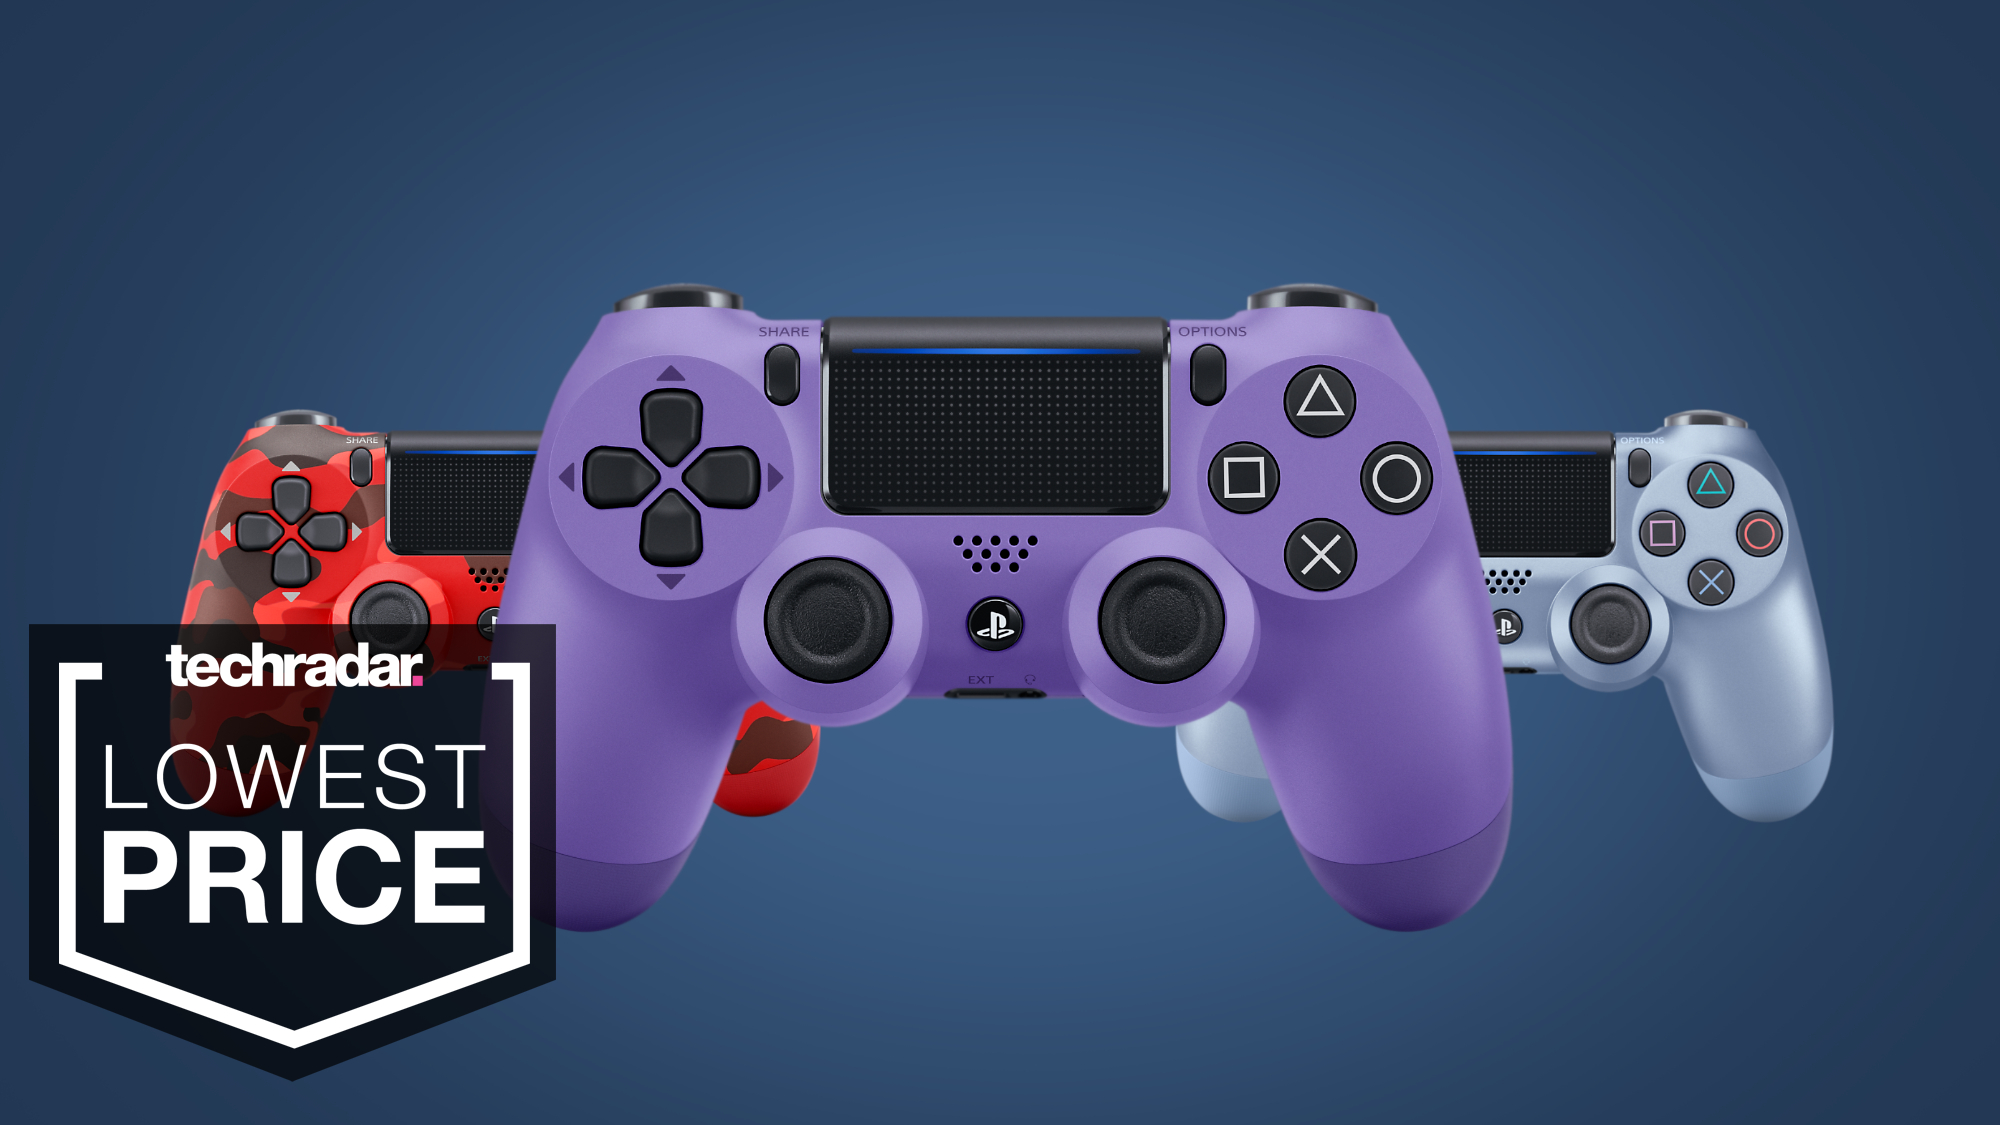 Get a PS4 DualShock 4 controller and 6 months of free Spotify for just £30